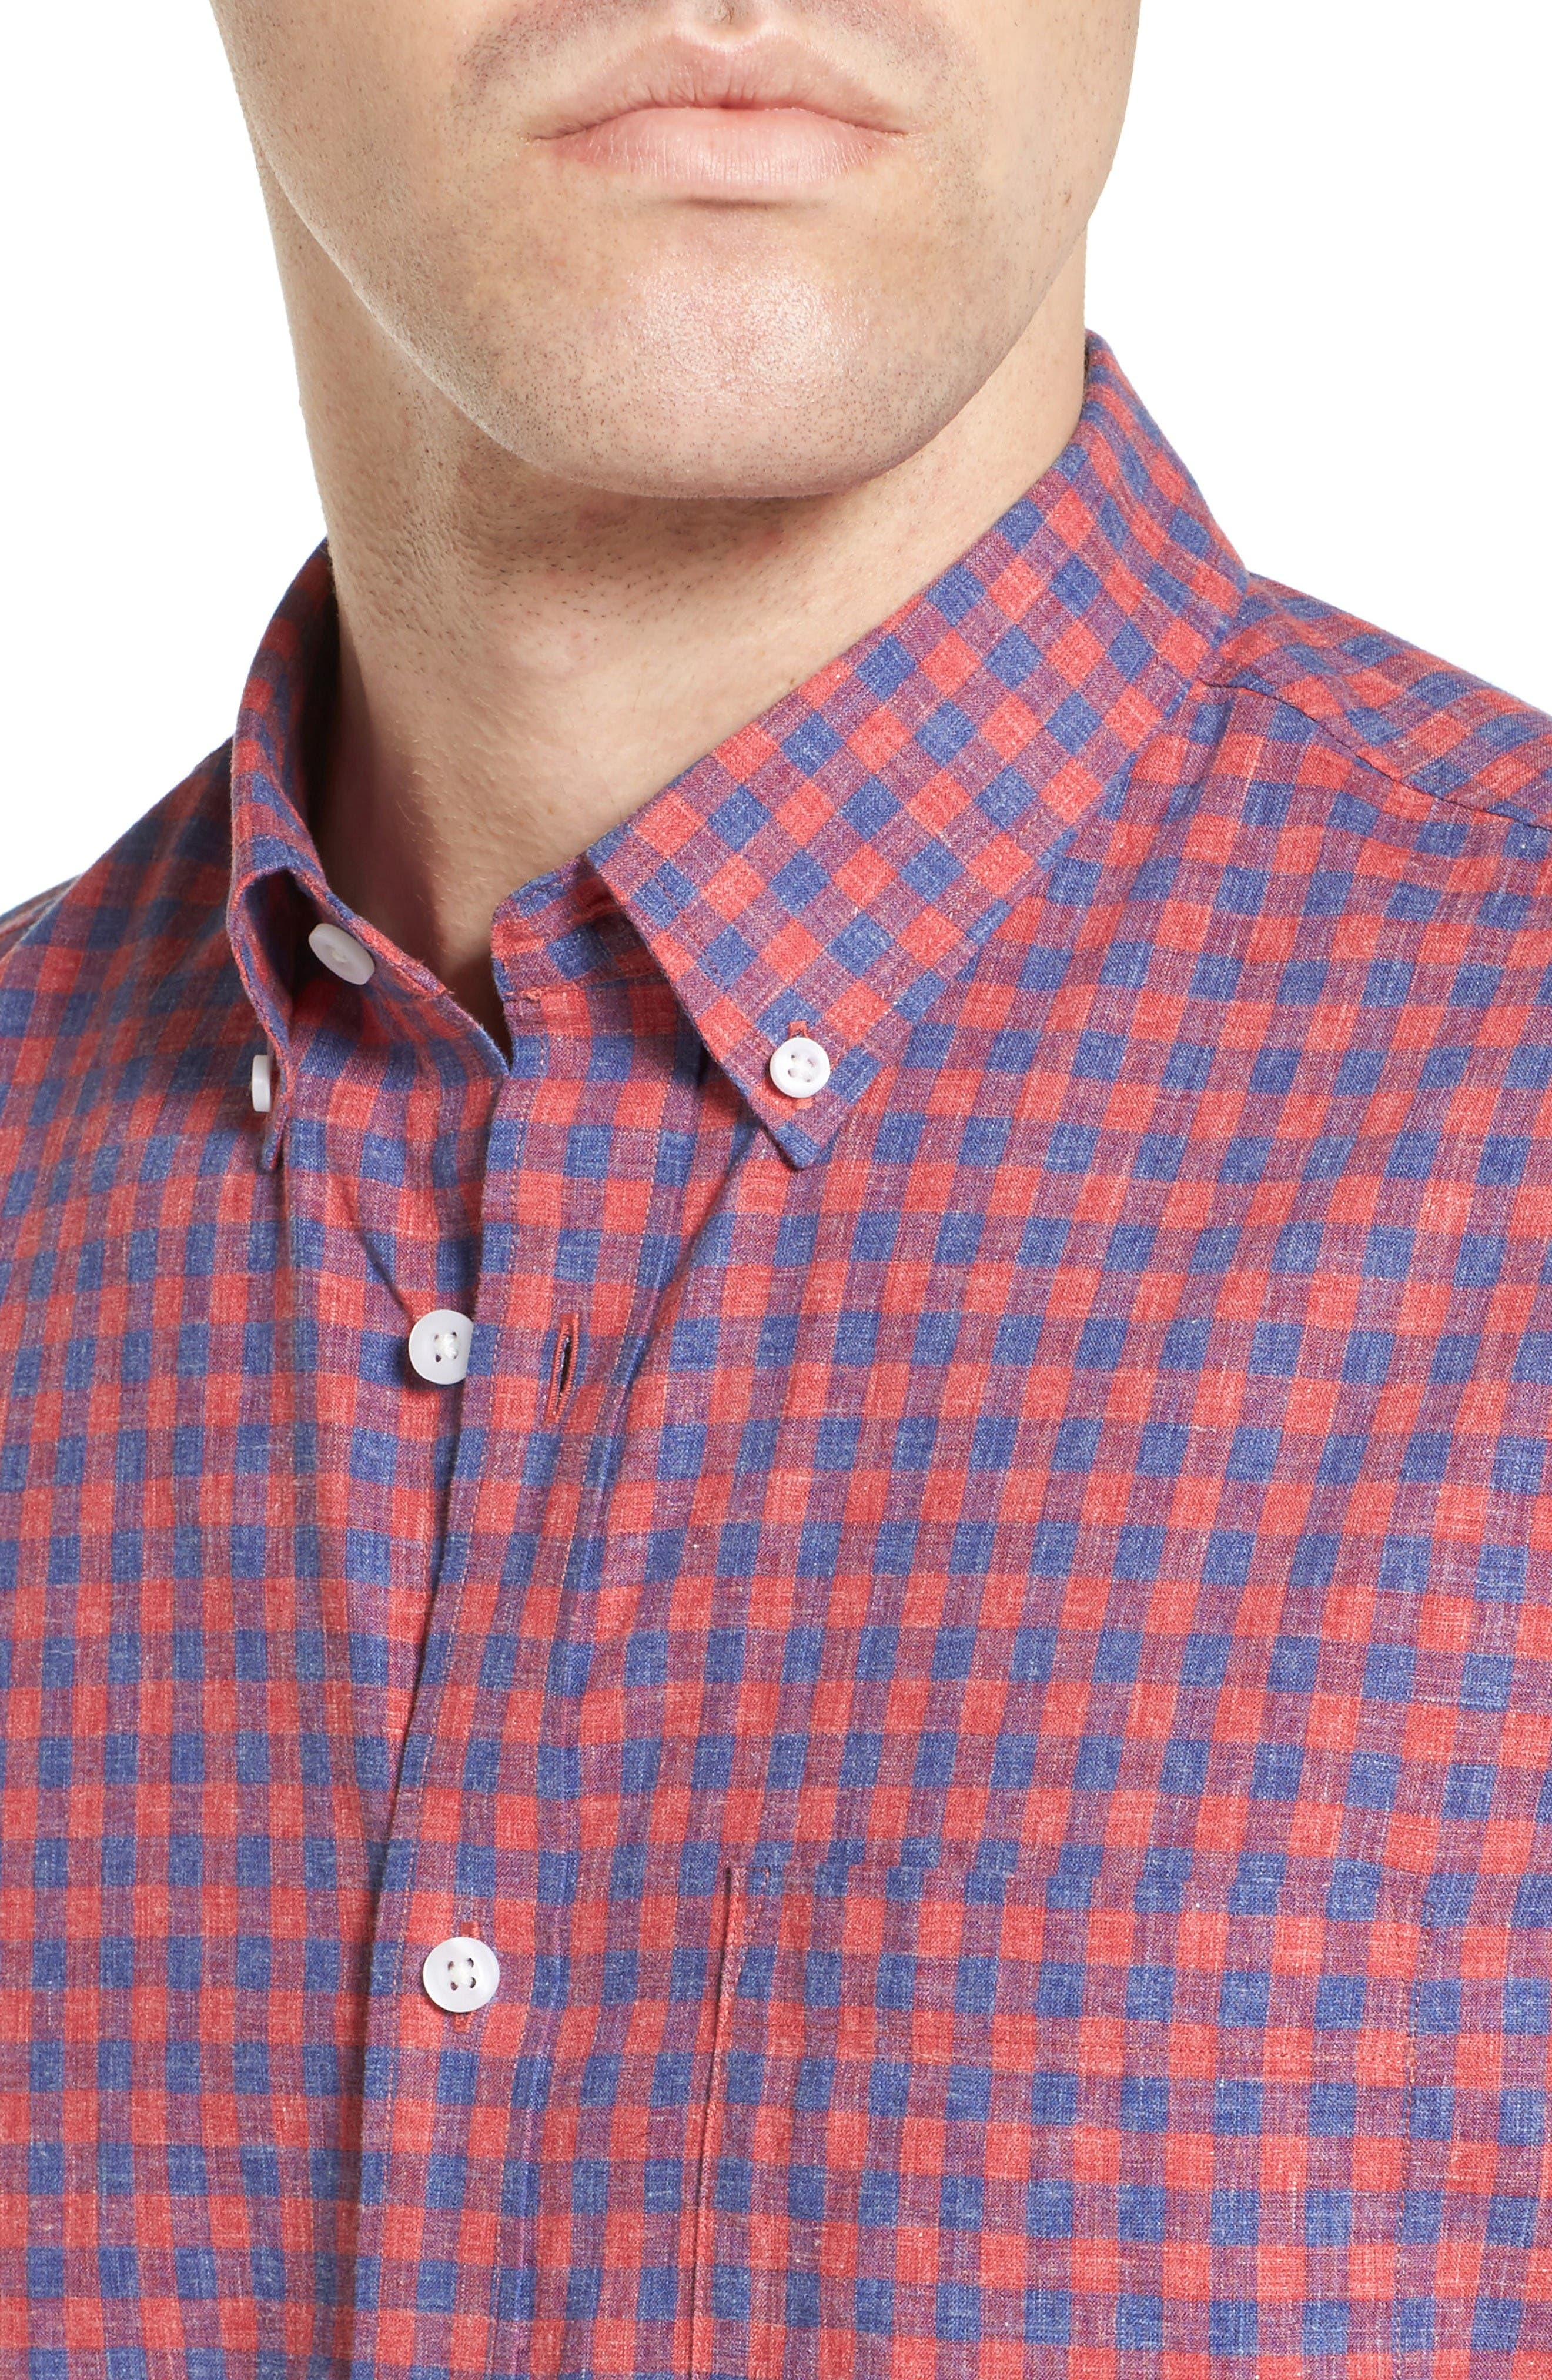 Slim Fit Gingham Check Sport Shirt,                             Alternate thumbnail 4, color,                             Red Chateaux Gingham